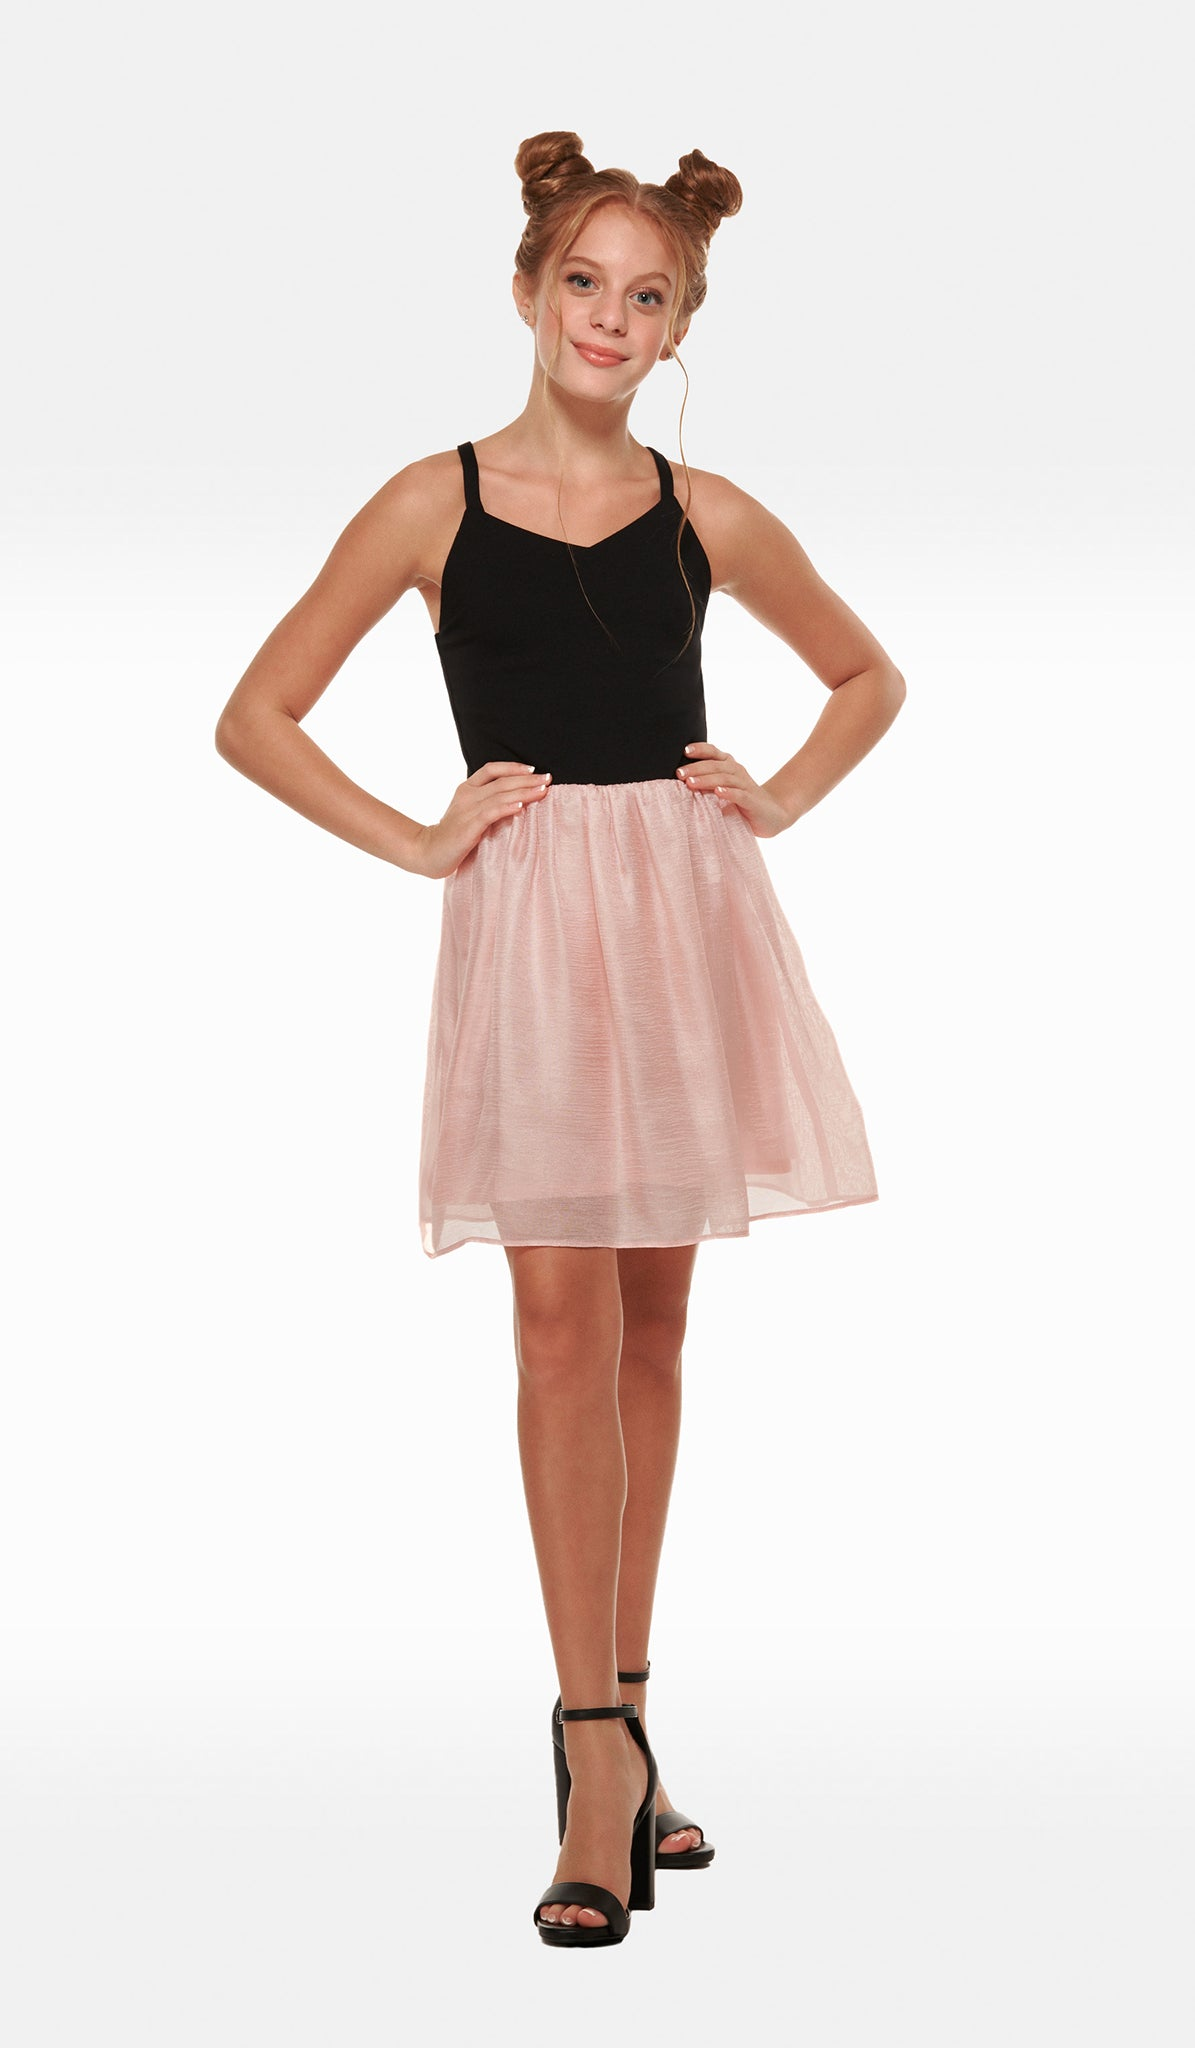 THE ALEXANDRA DRESS - Sallymiller.com - [variant title] - | Event & Party Dresses for Tween Girls & Juniors | Weddings Dresses, Bat Mitzvah Dresses, Sweet Sixteen Dresses, Graduation Dresses, Birthday Party Dresses, Bar Mitzvah Dresses, Cotillion Dresses